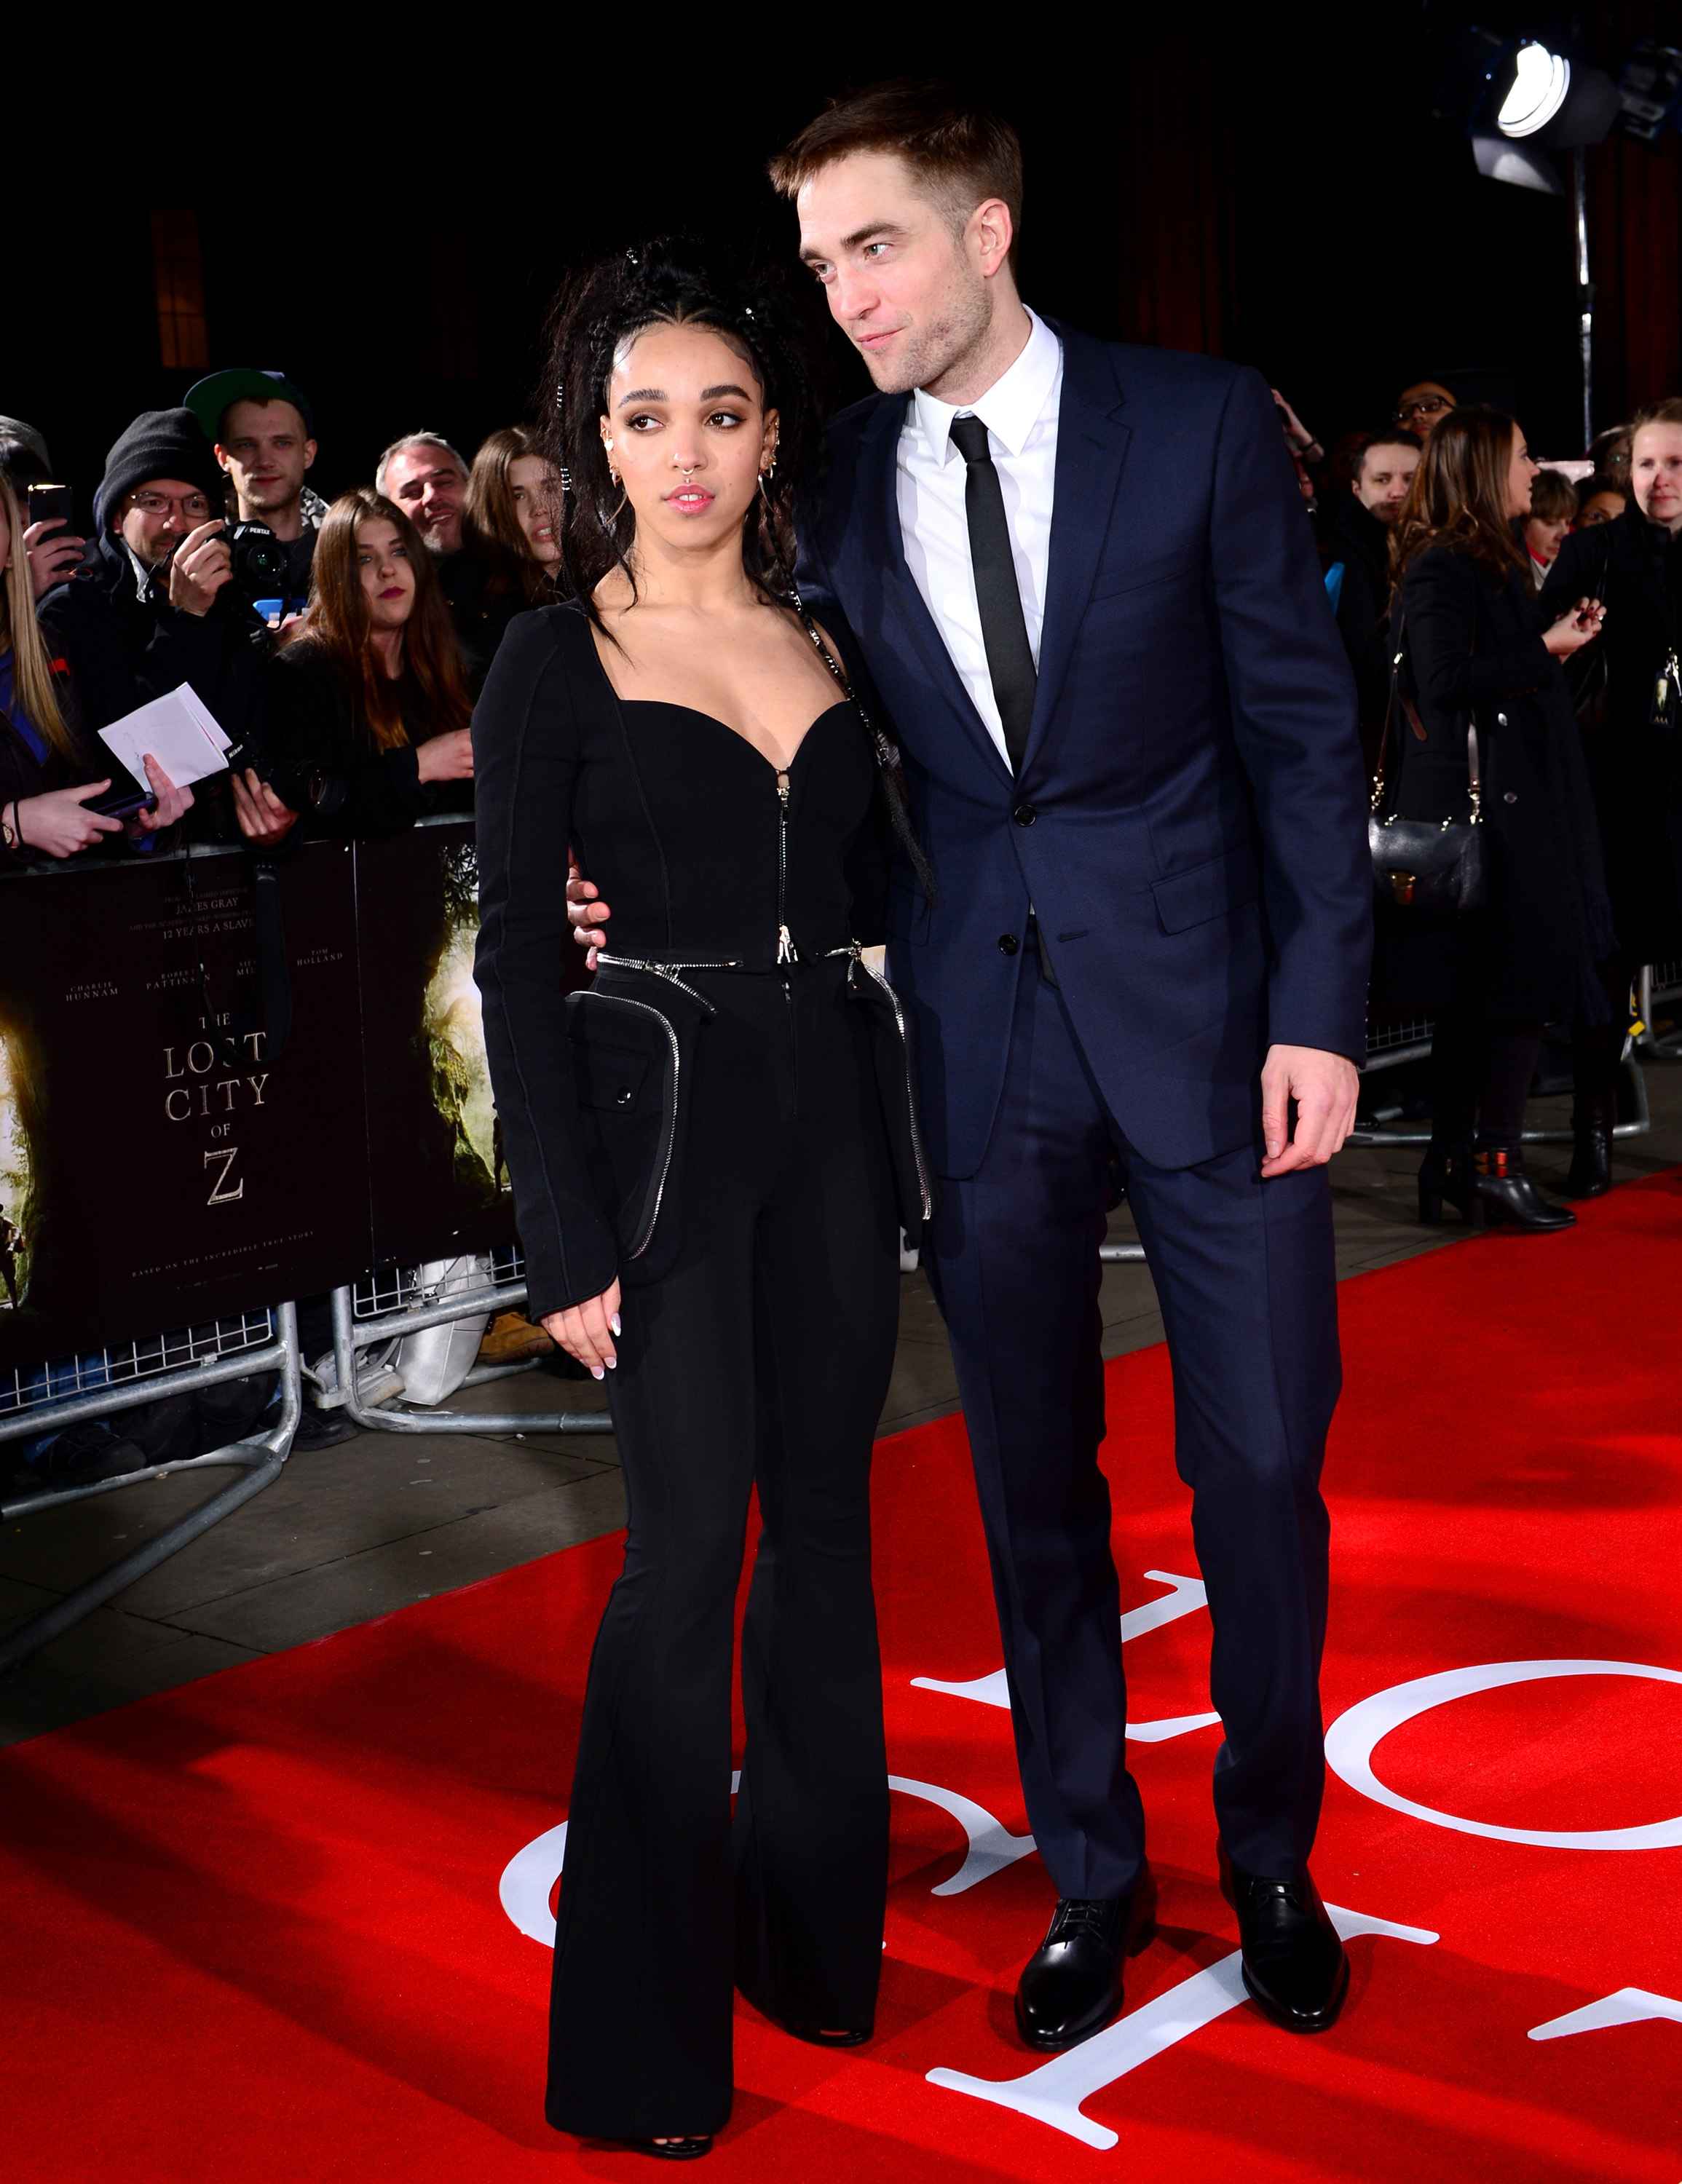 New report claims R.Patz and FKA Twigs have called it quits